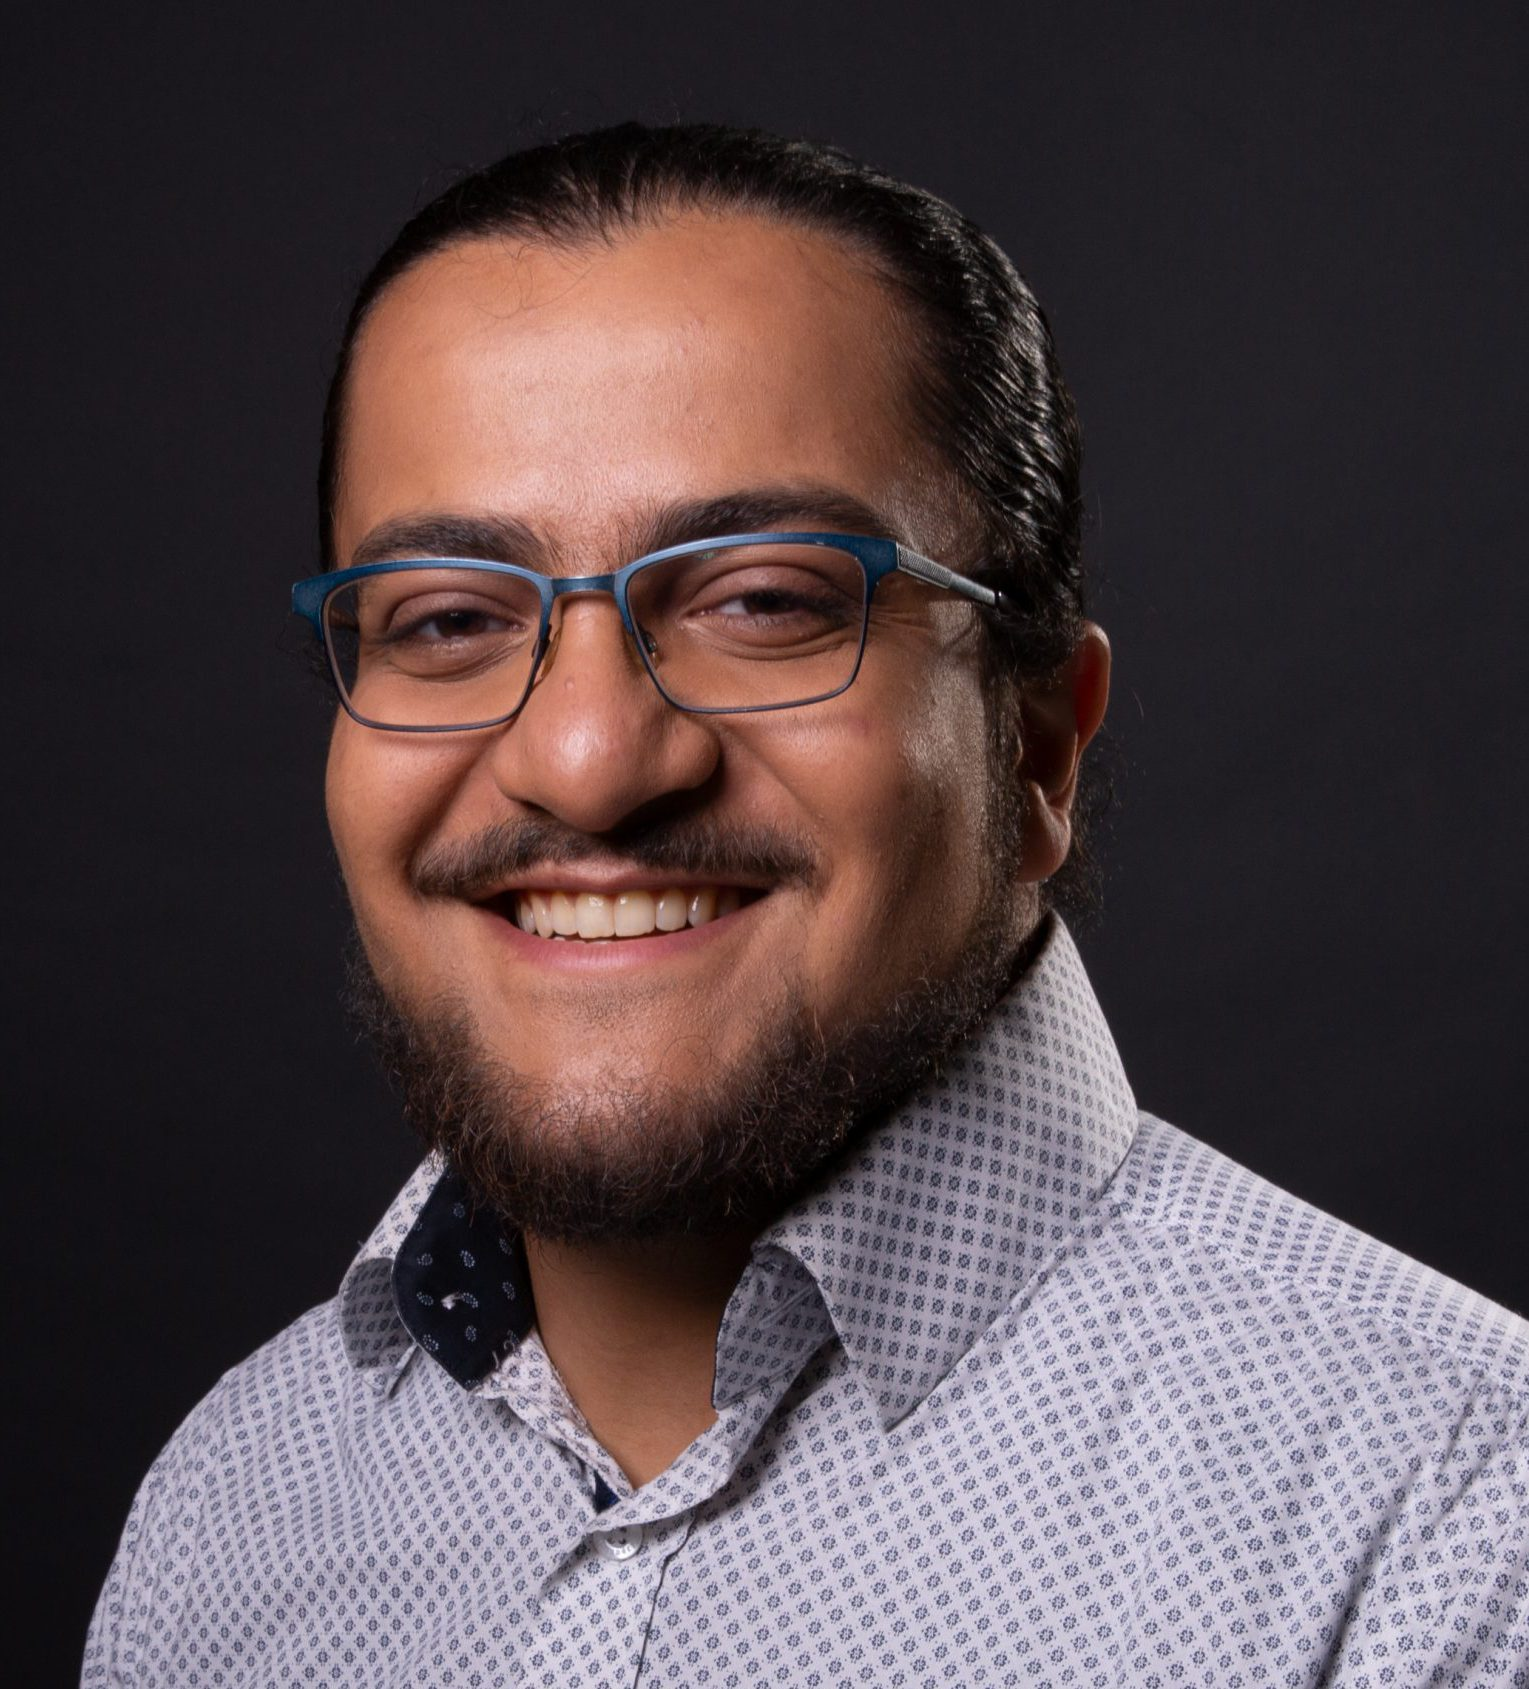 Omar: Smiling looking at camera with a black background, with blue printed dress shirt and blue framed glasses, picture is up to just below the shoulders.